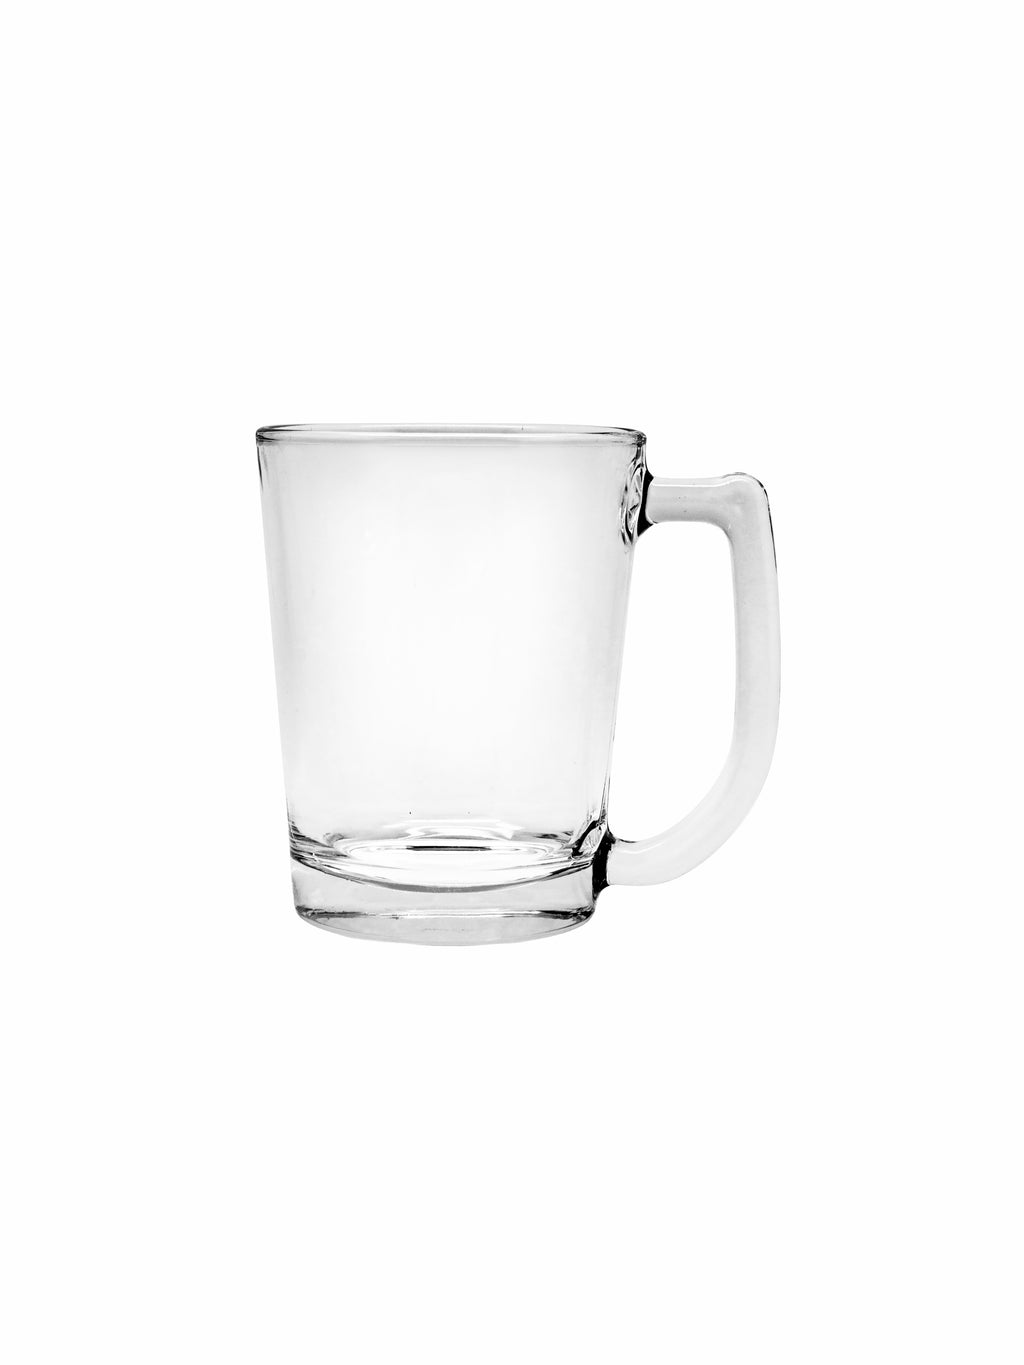 LUCKY GLASS Mugs (Set of 12pcs)-LG-312007-2